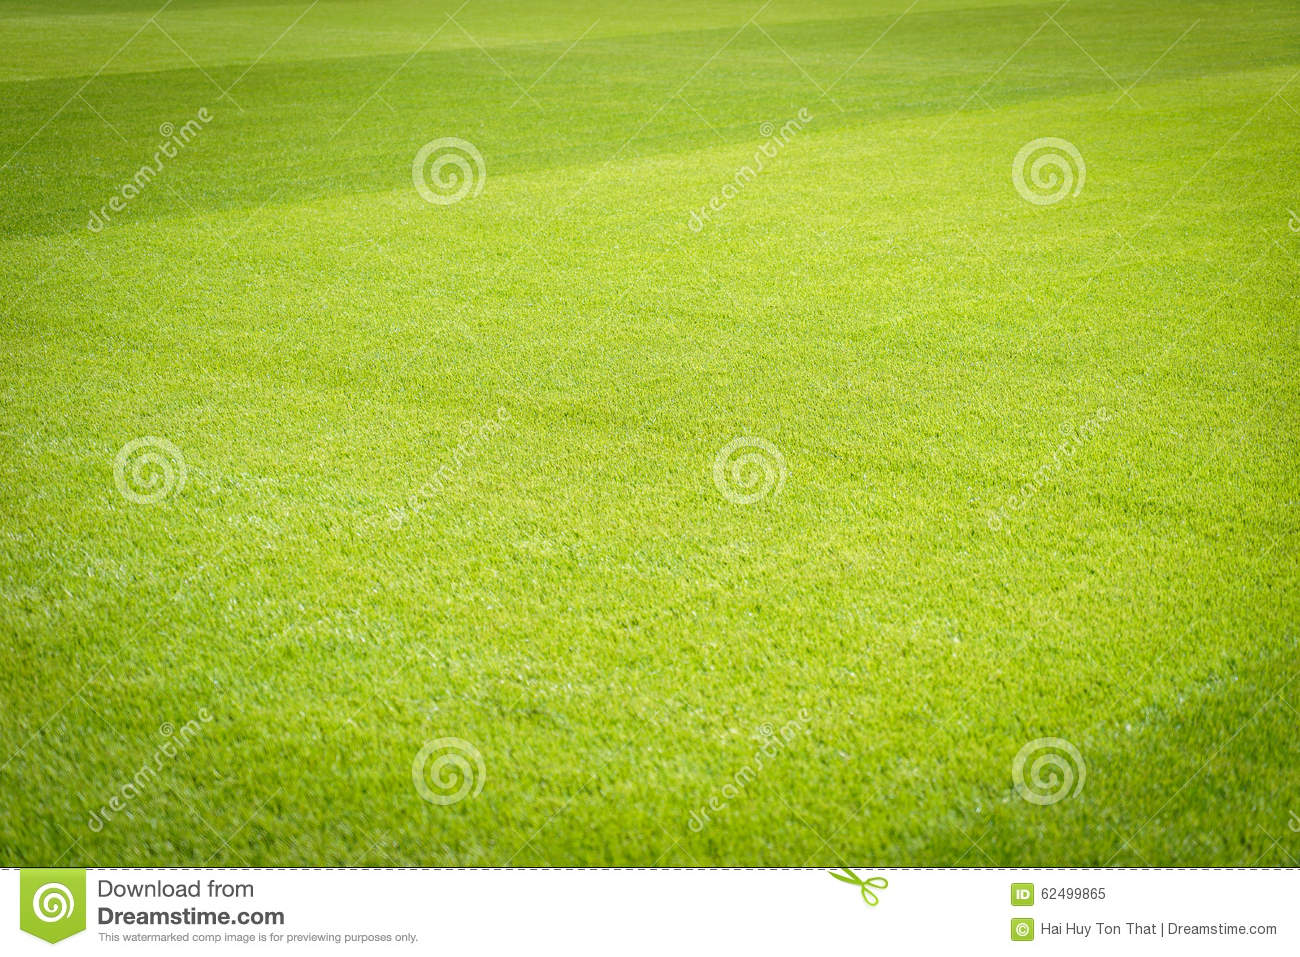 football field background stock image image of clean